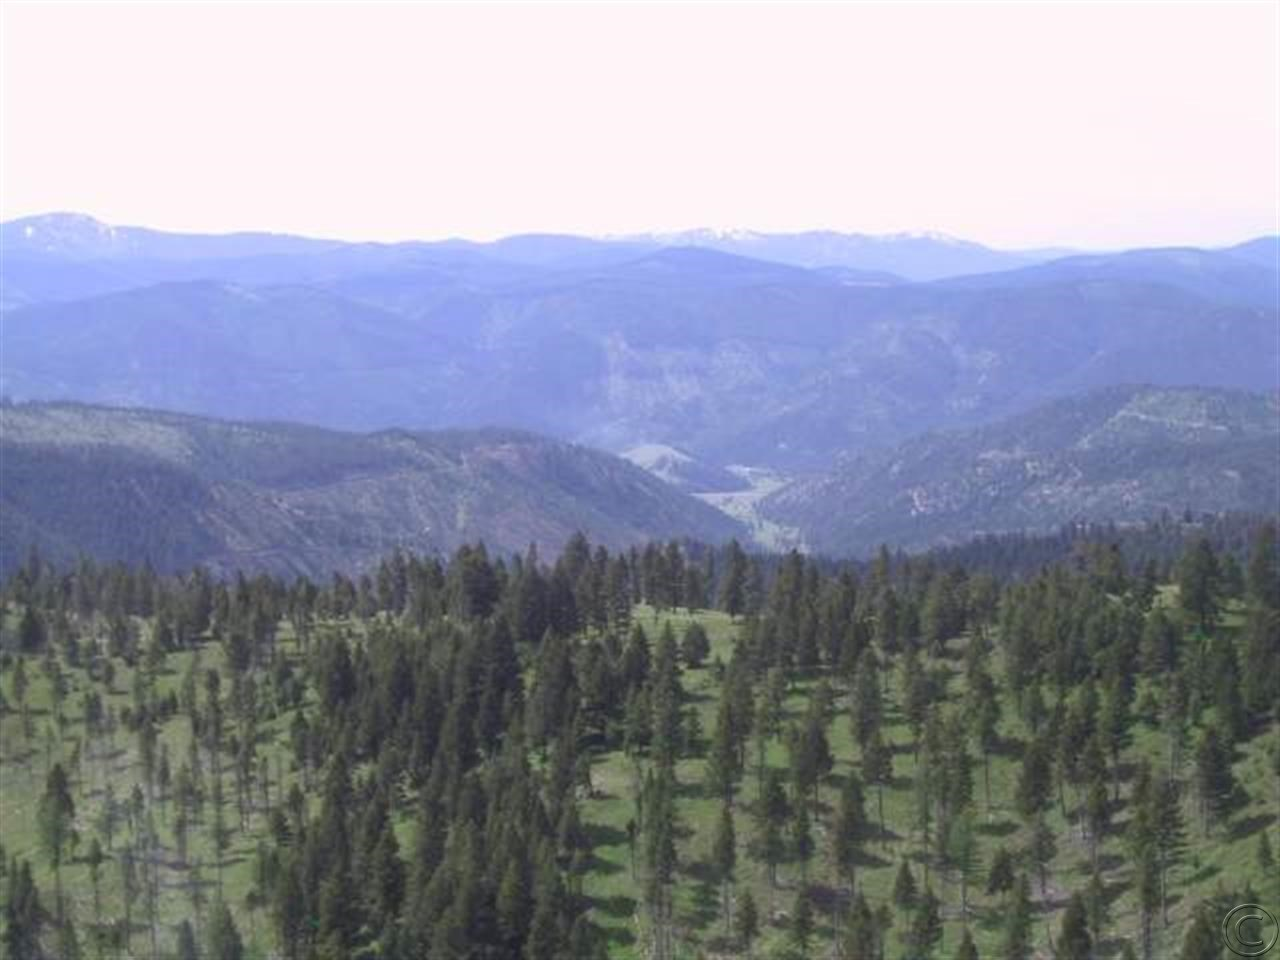 320 acres in Clinton, Montana